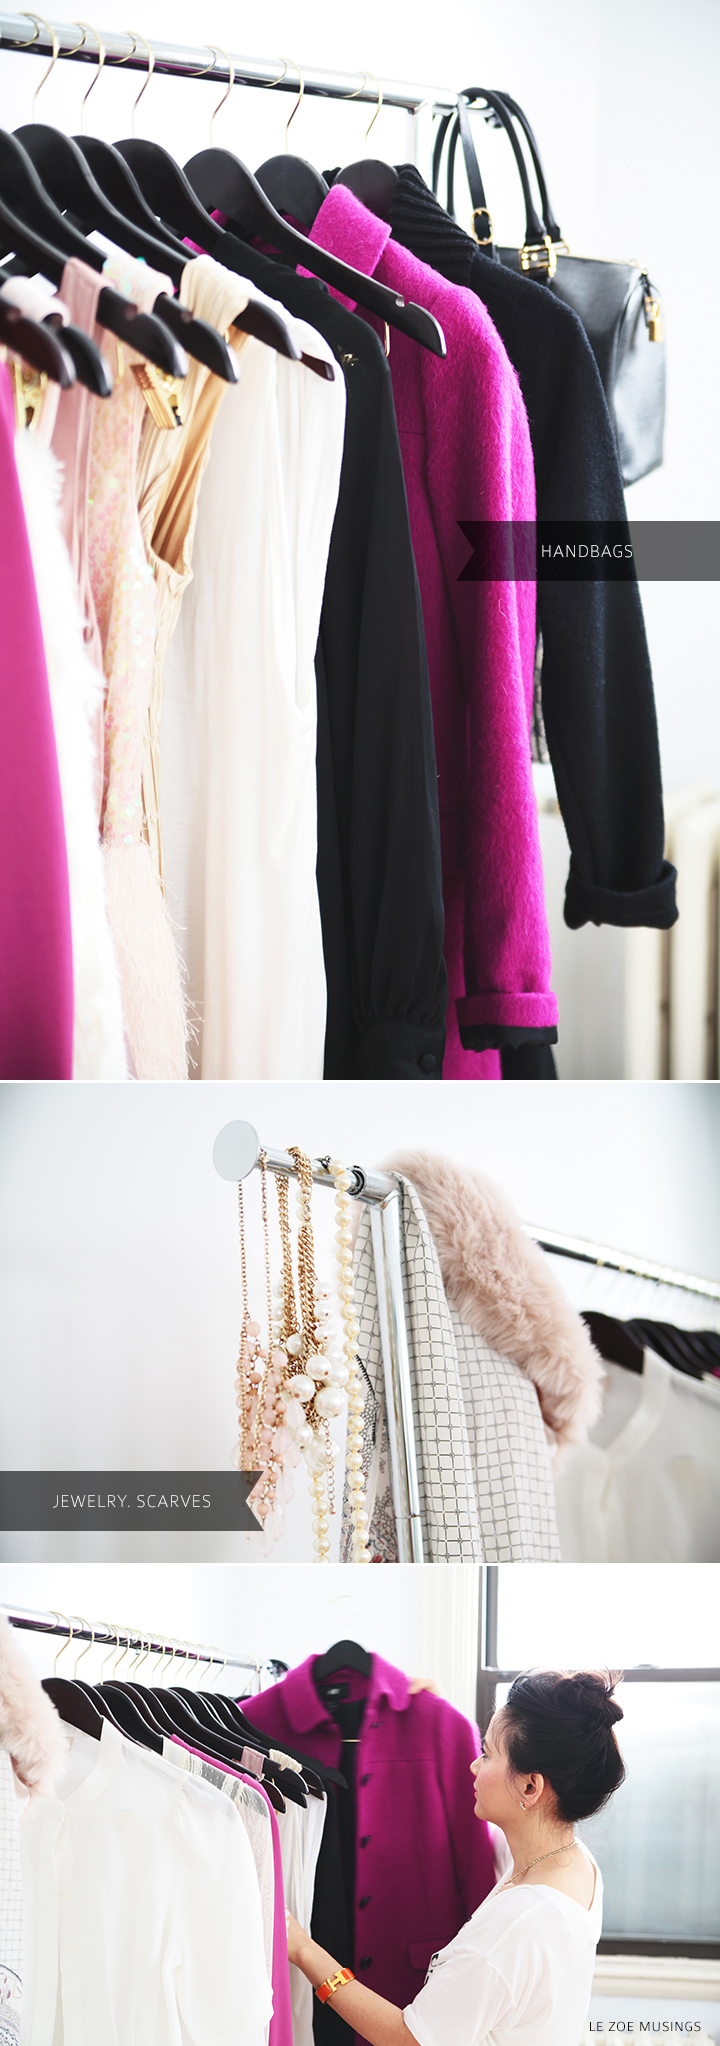 The Mobile Closet 2 by Le Zoe Musings